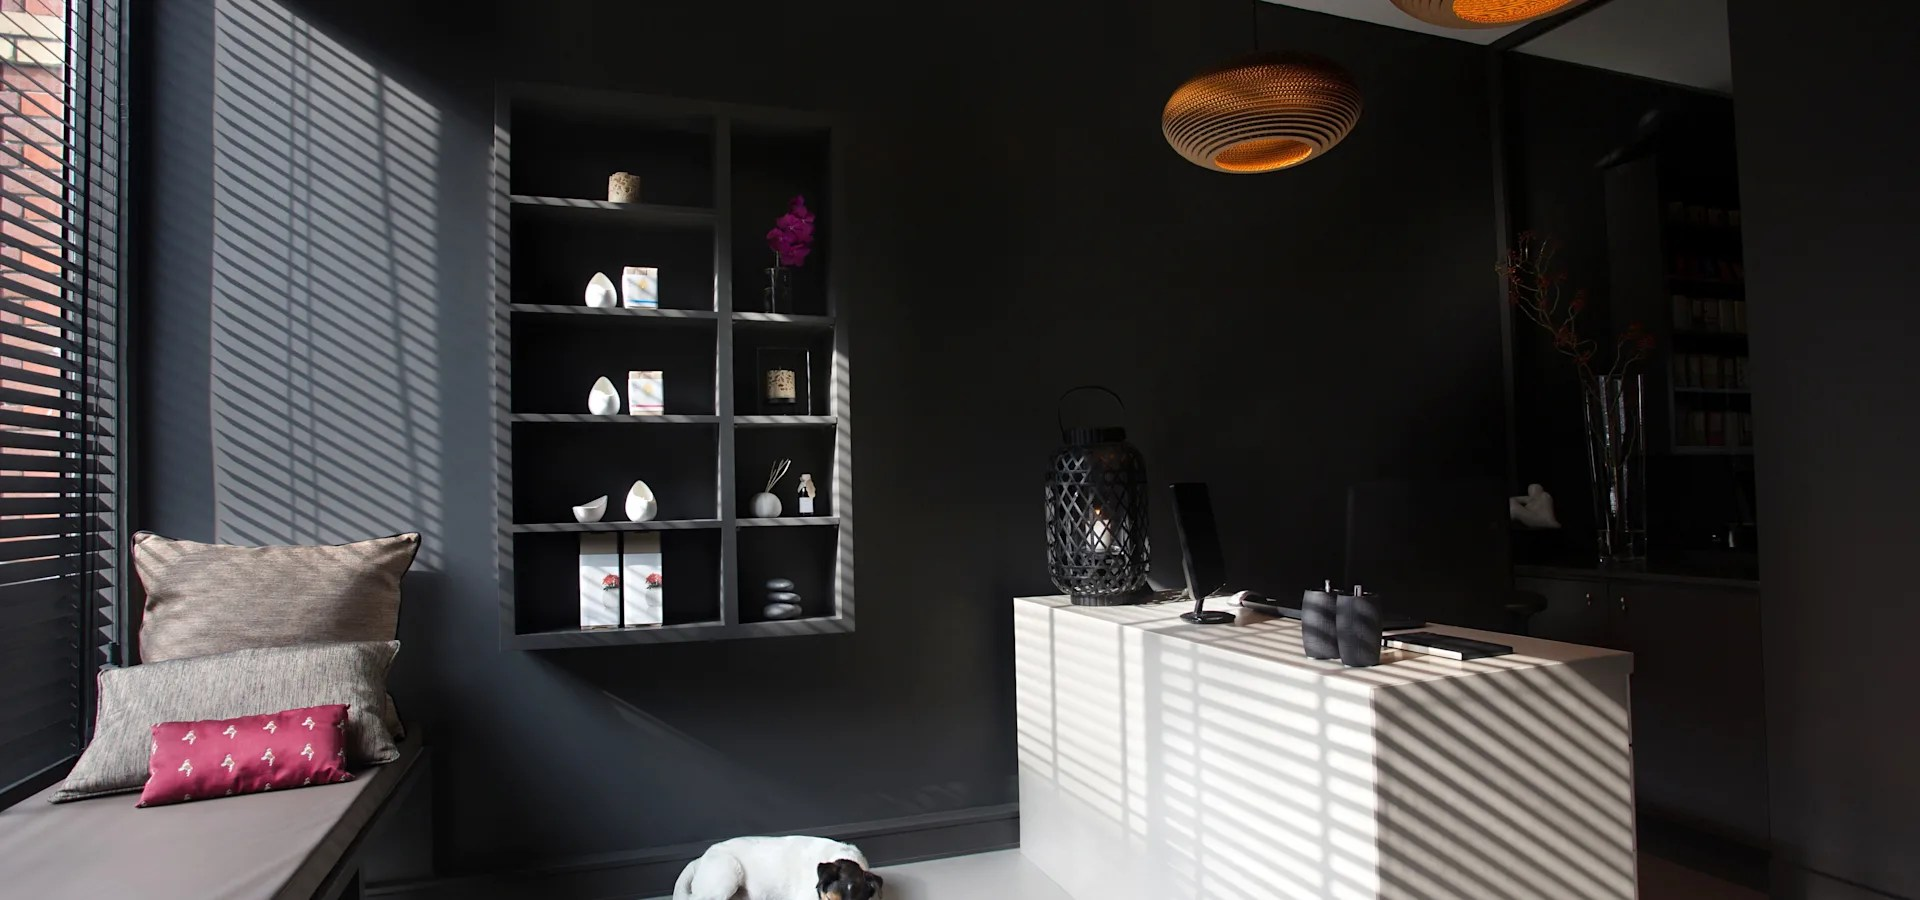 Corpus Rub Corpus Rub Massage Studio Amsterdam Nl By Szidesign Homify